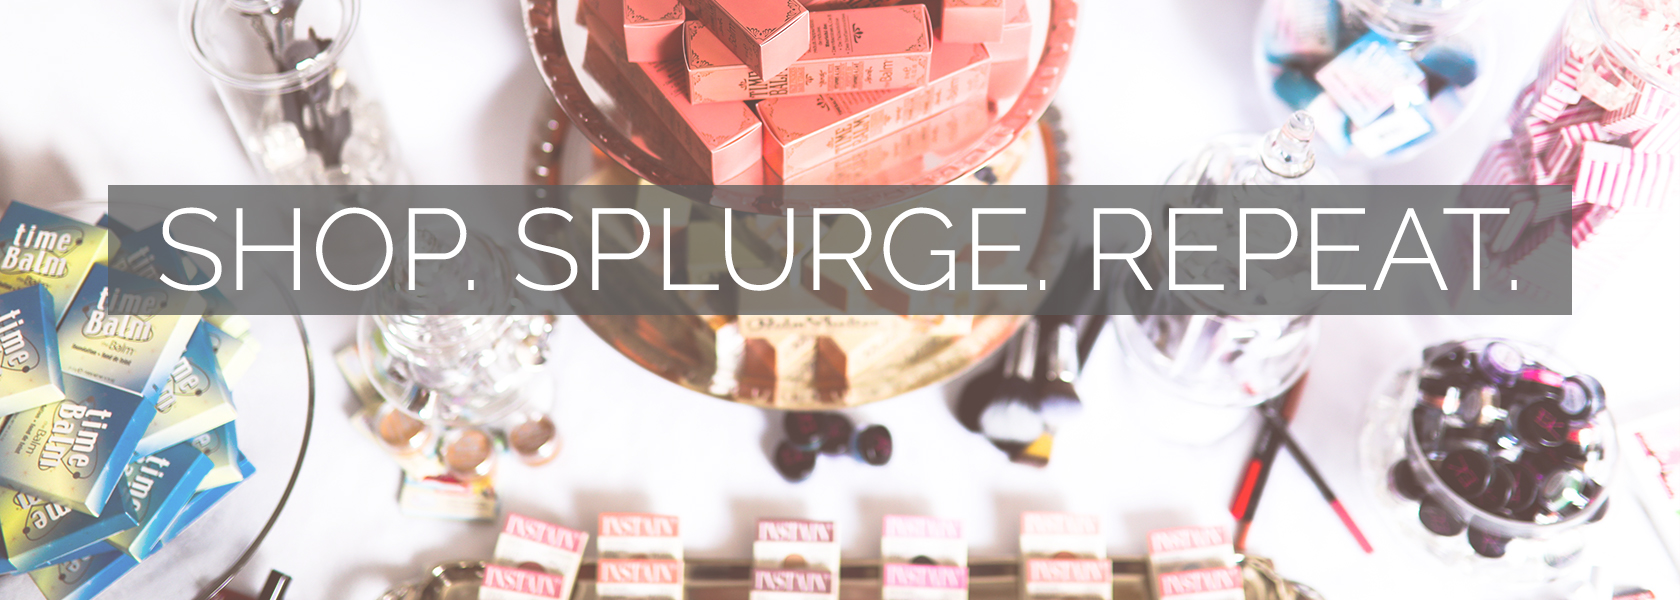 Shop. Splurge. Repeat. at My Cosmetic Counter